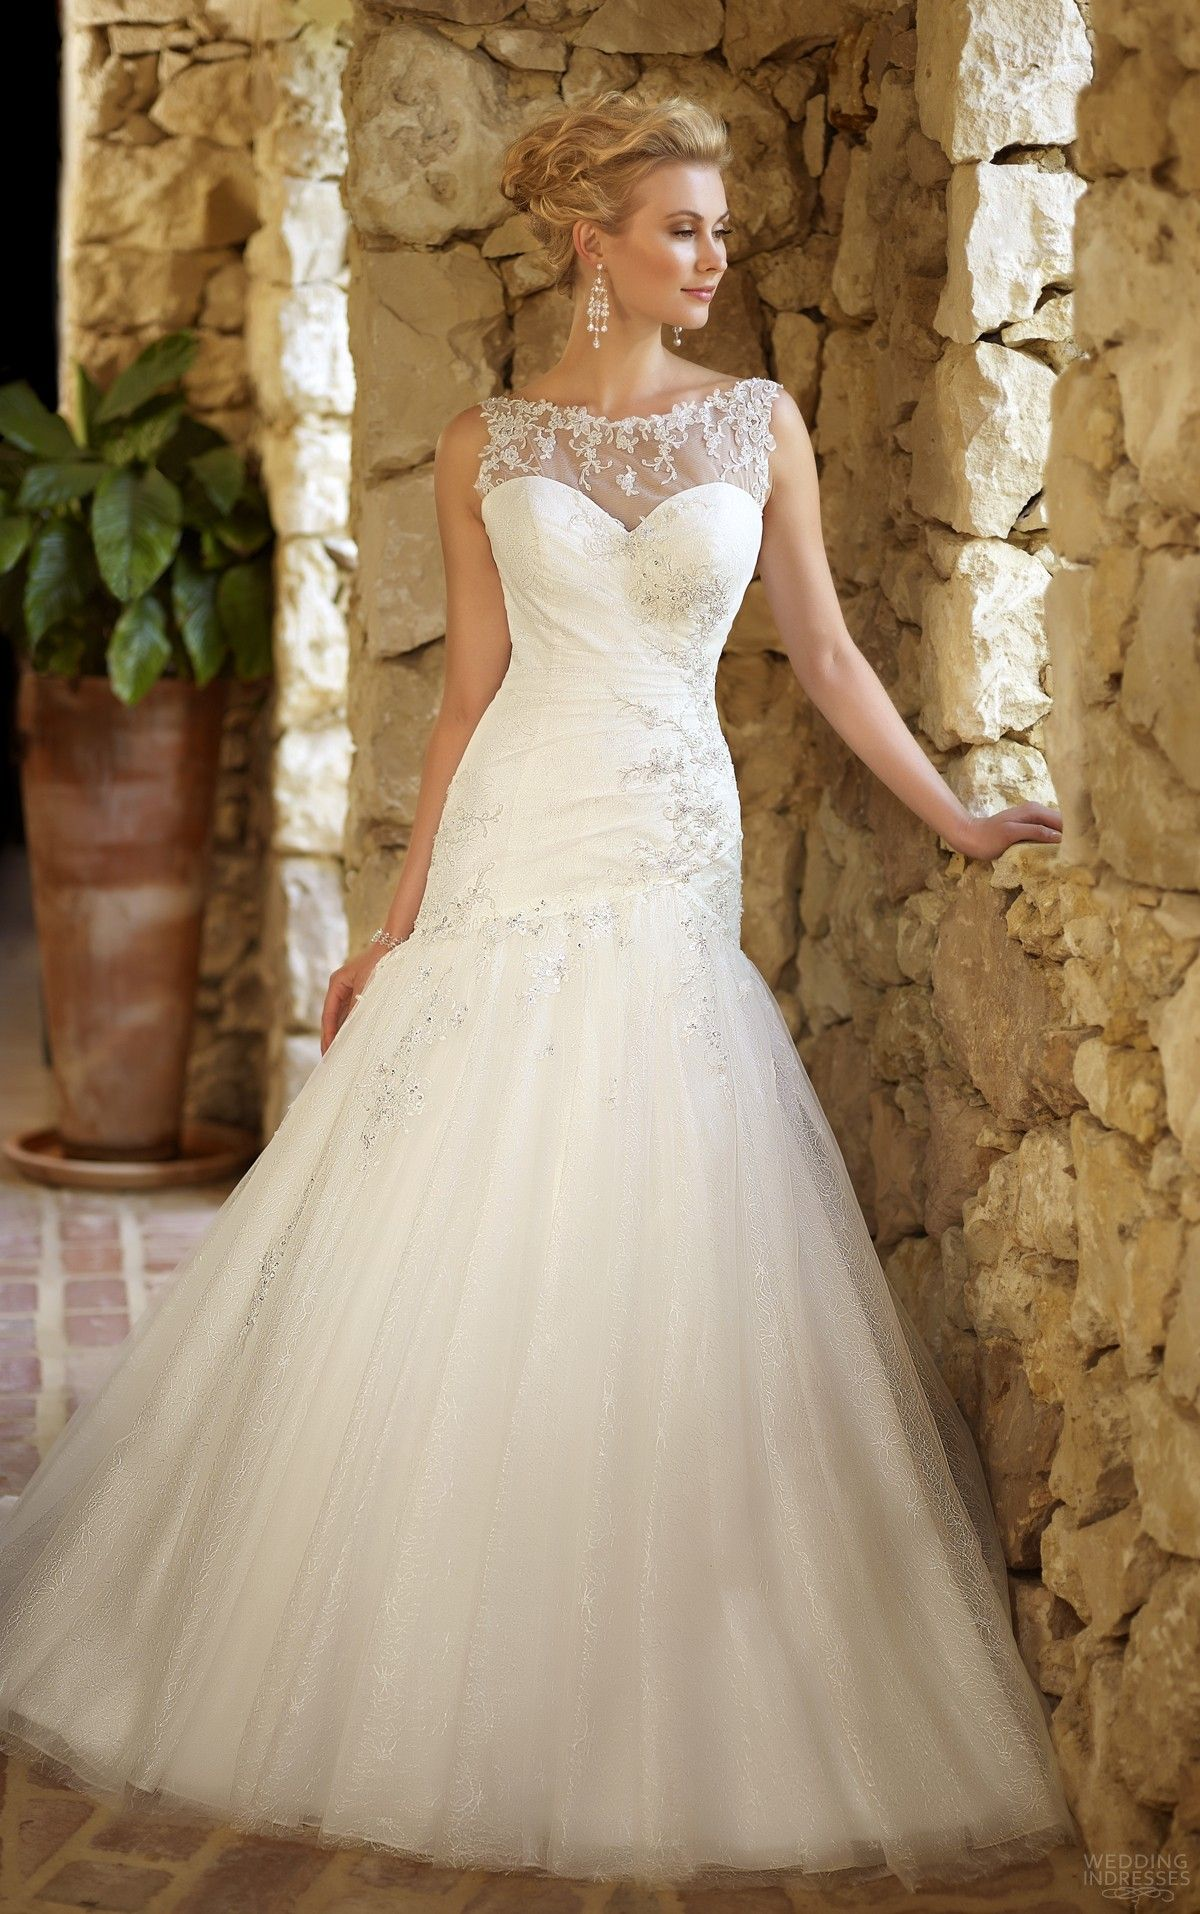 Jenn Bova Fit And Flair Wedding Dress With Illusion Neckline Flare Beaded Lace Tull Skirt